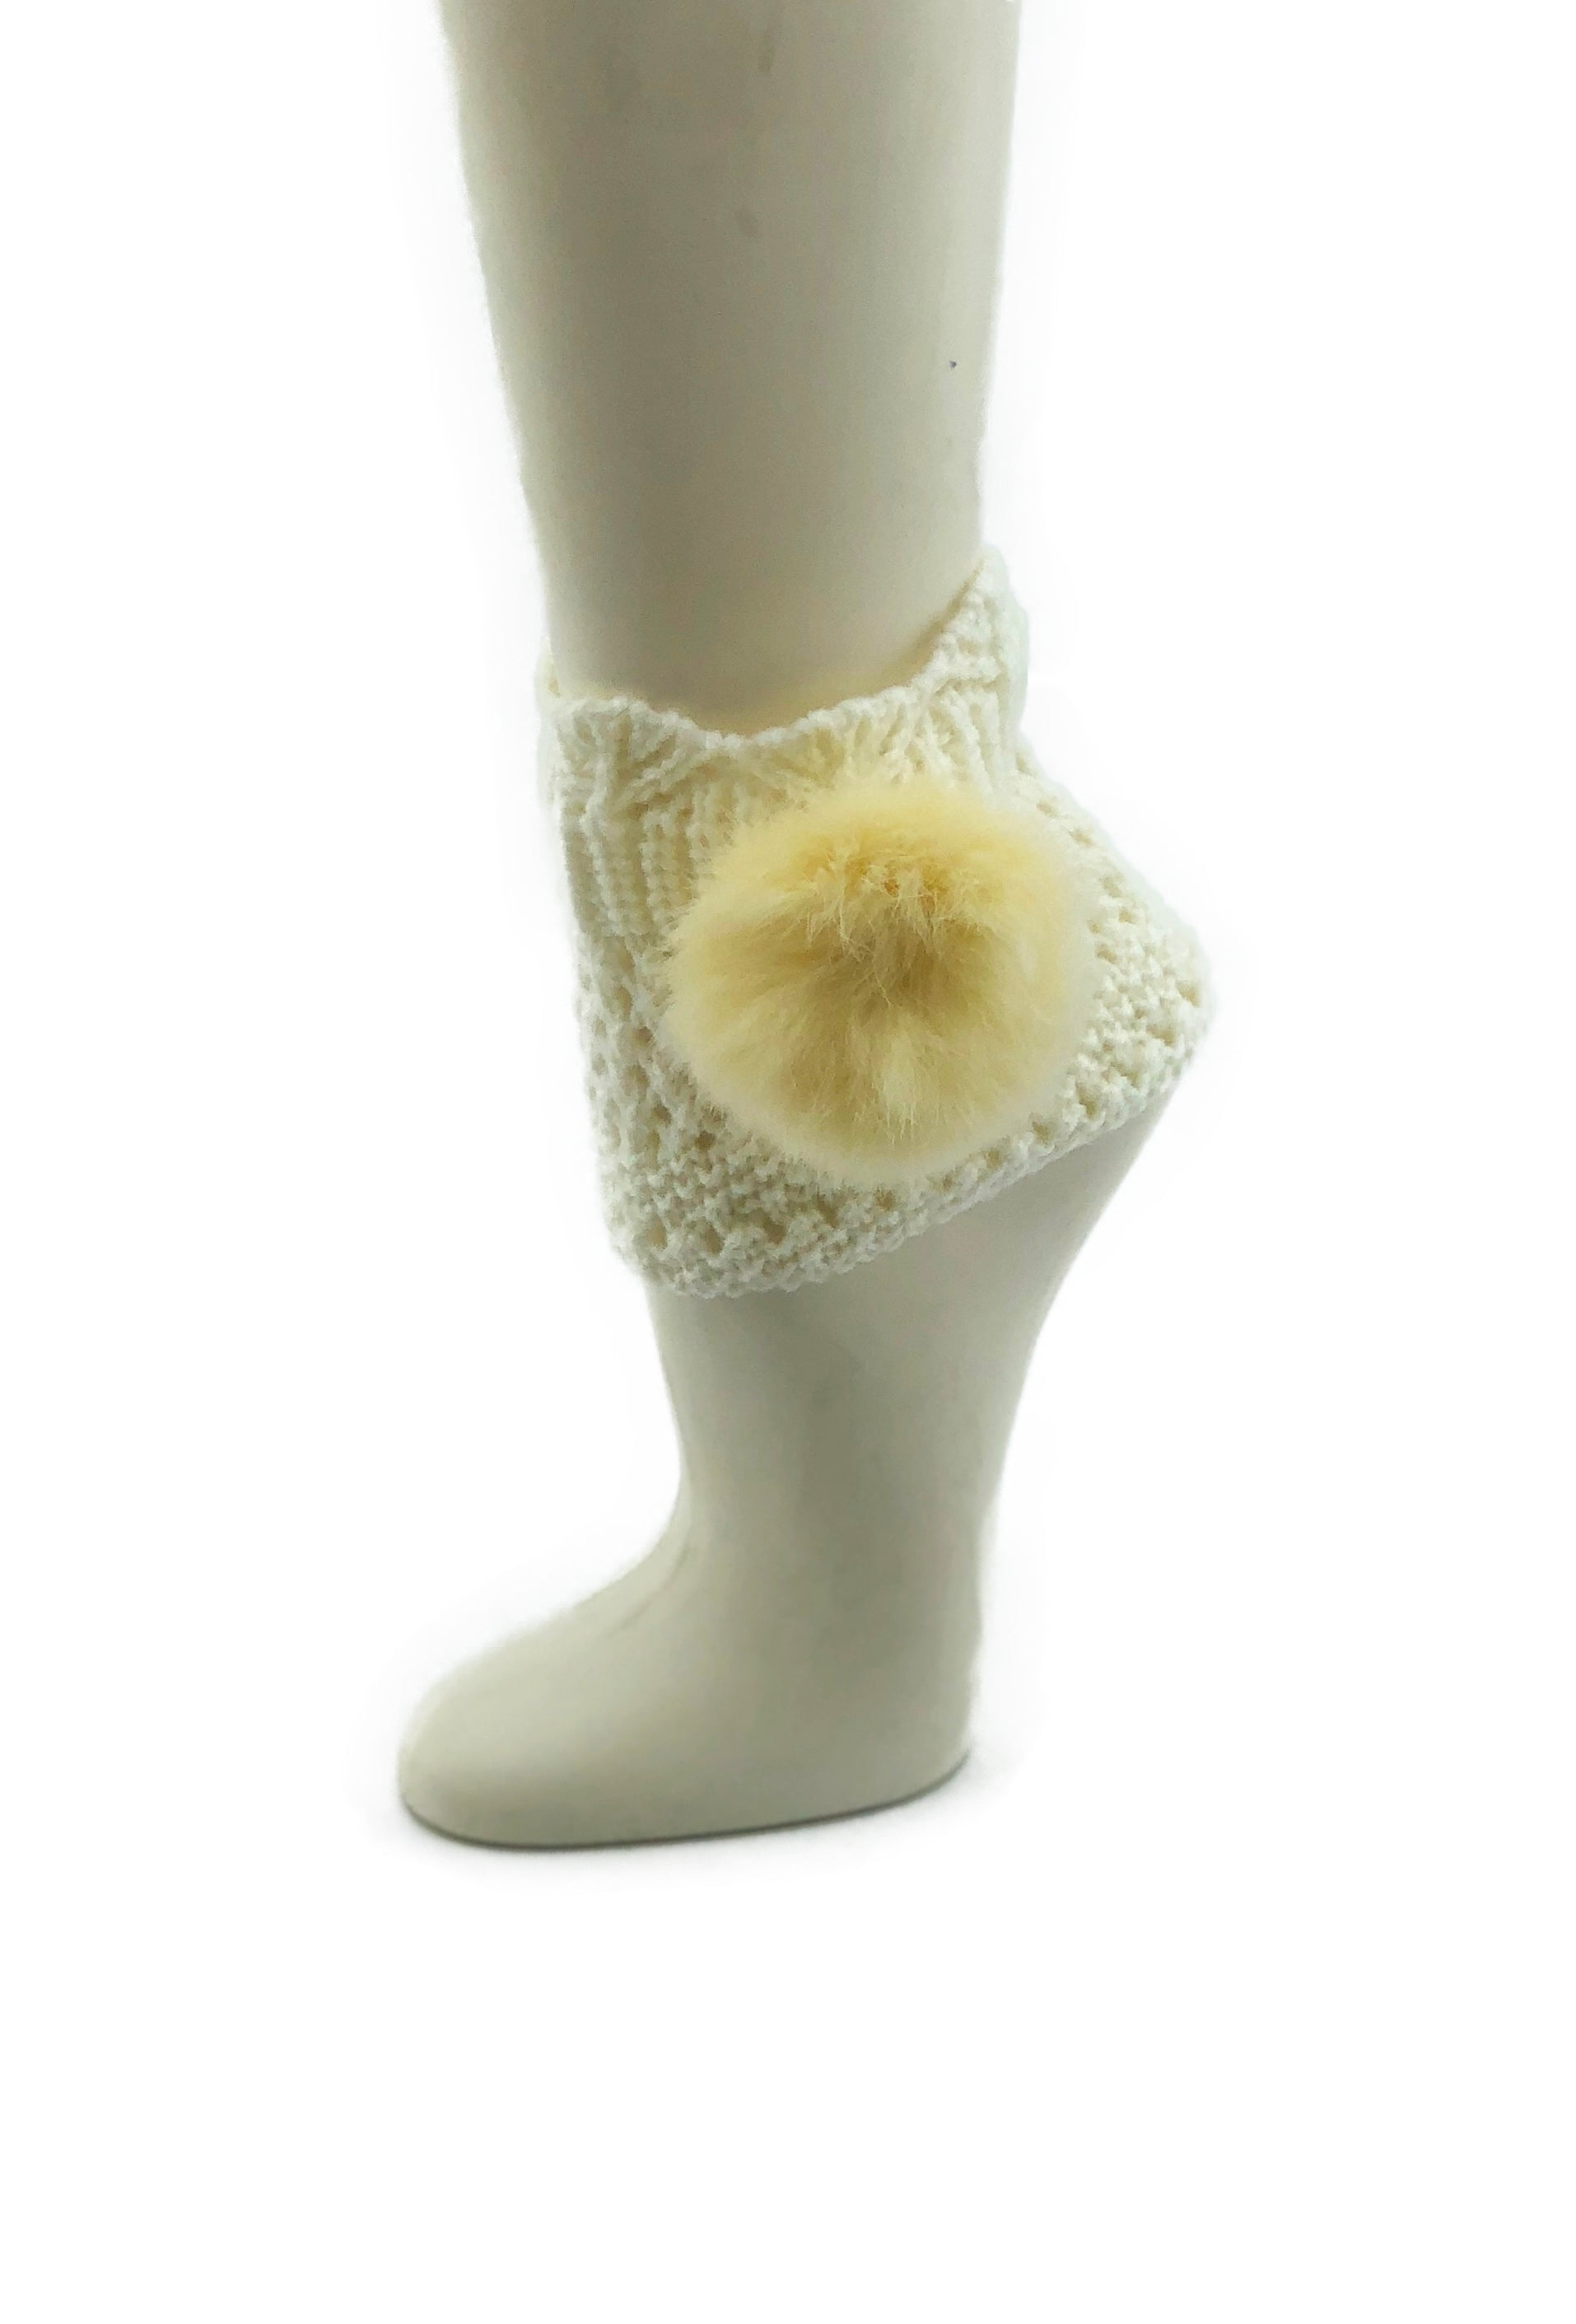 Off-White Leg Warmer/Boot Cover with Rex Rabbit Pom - paulamariecollection